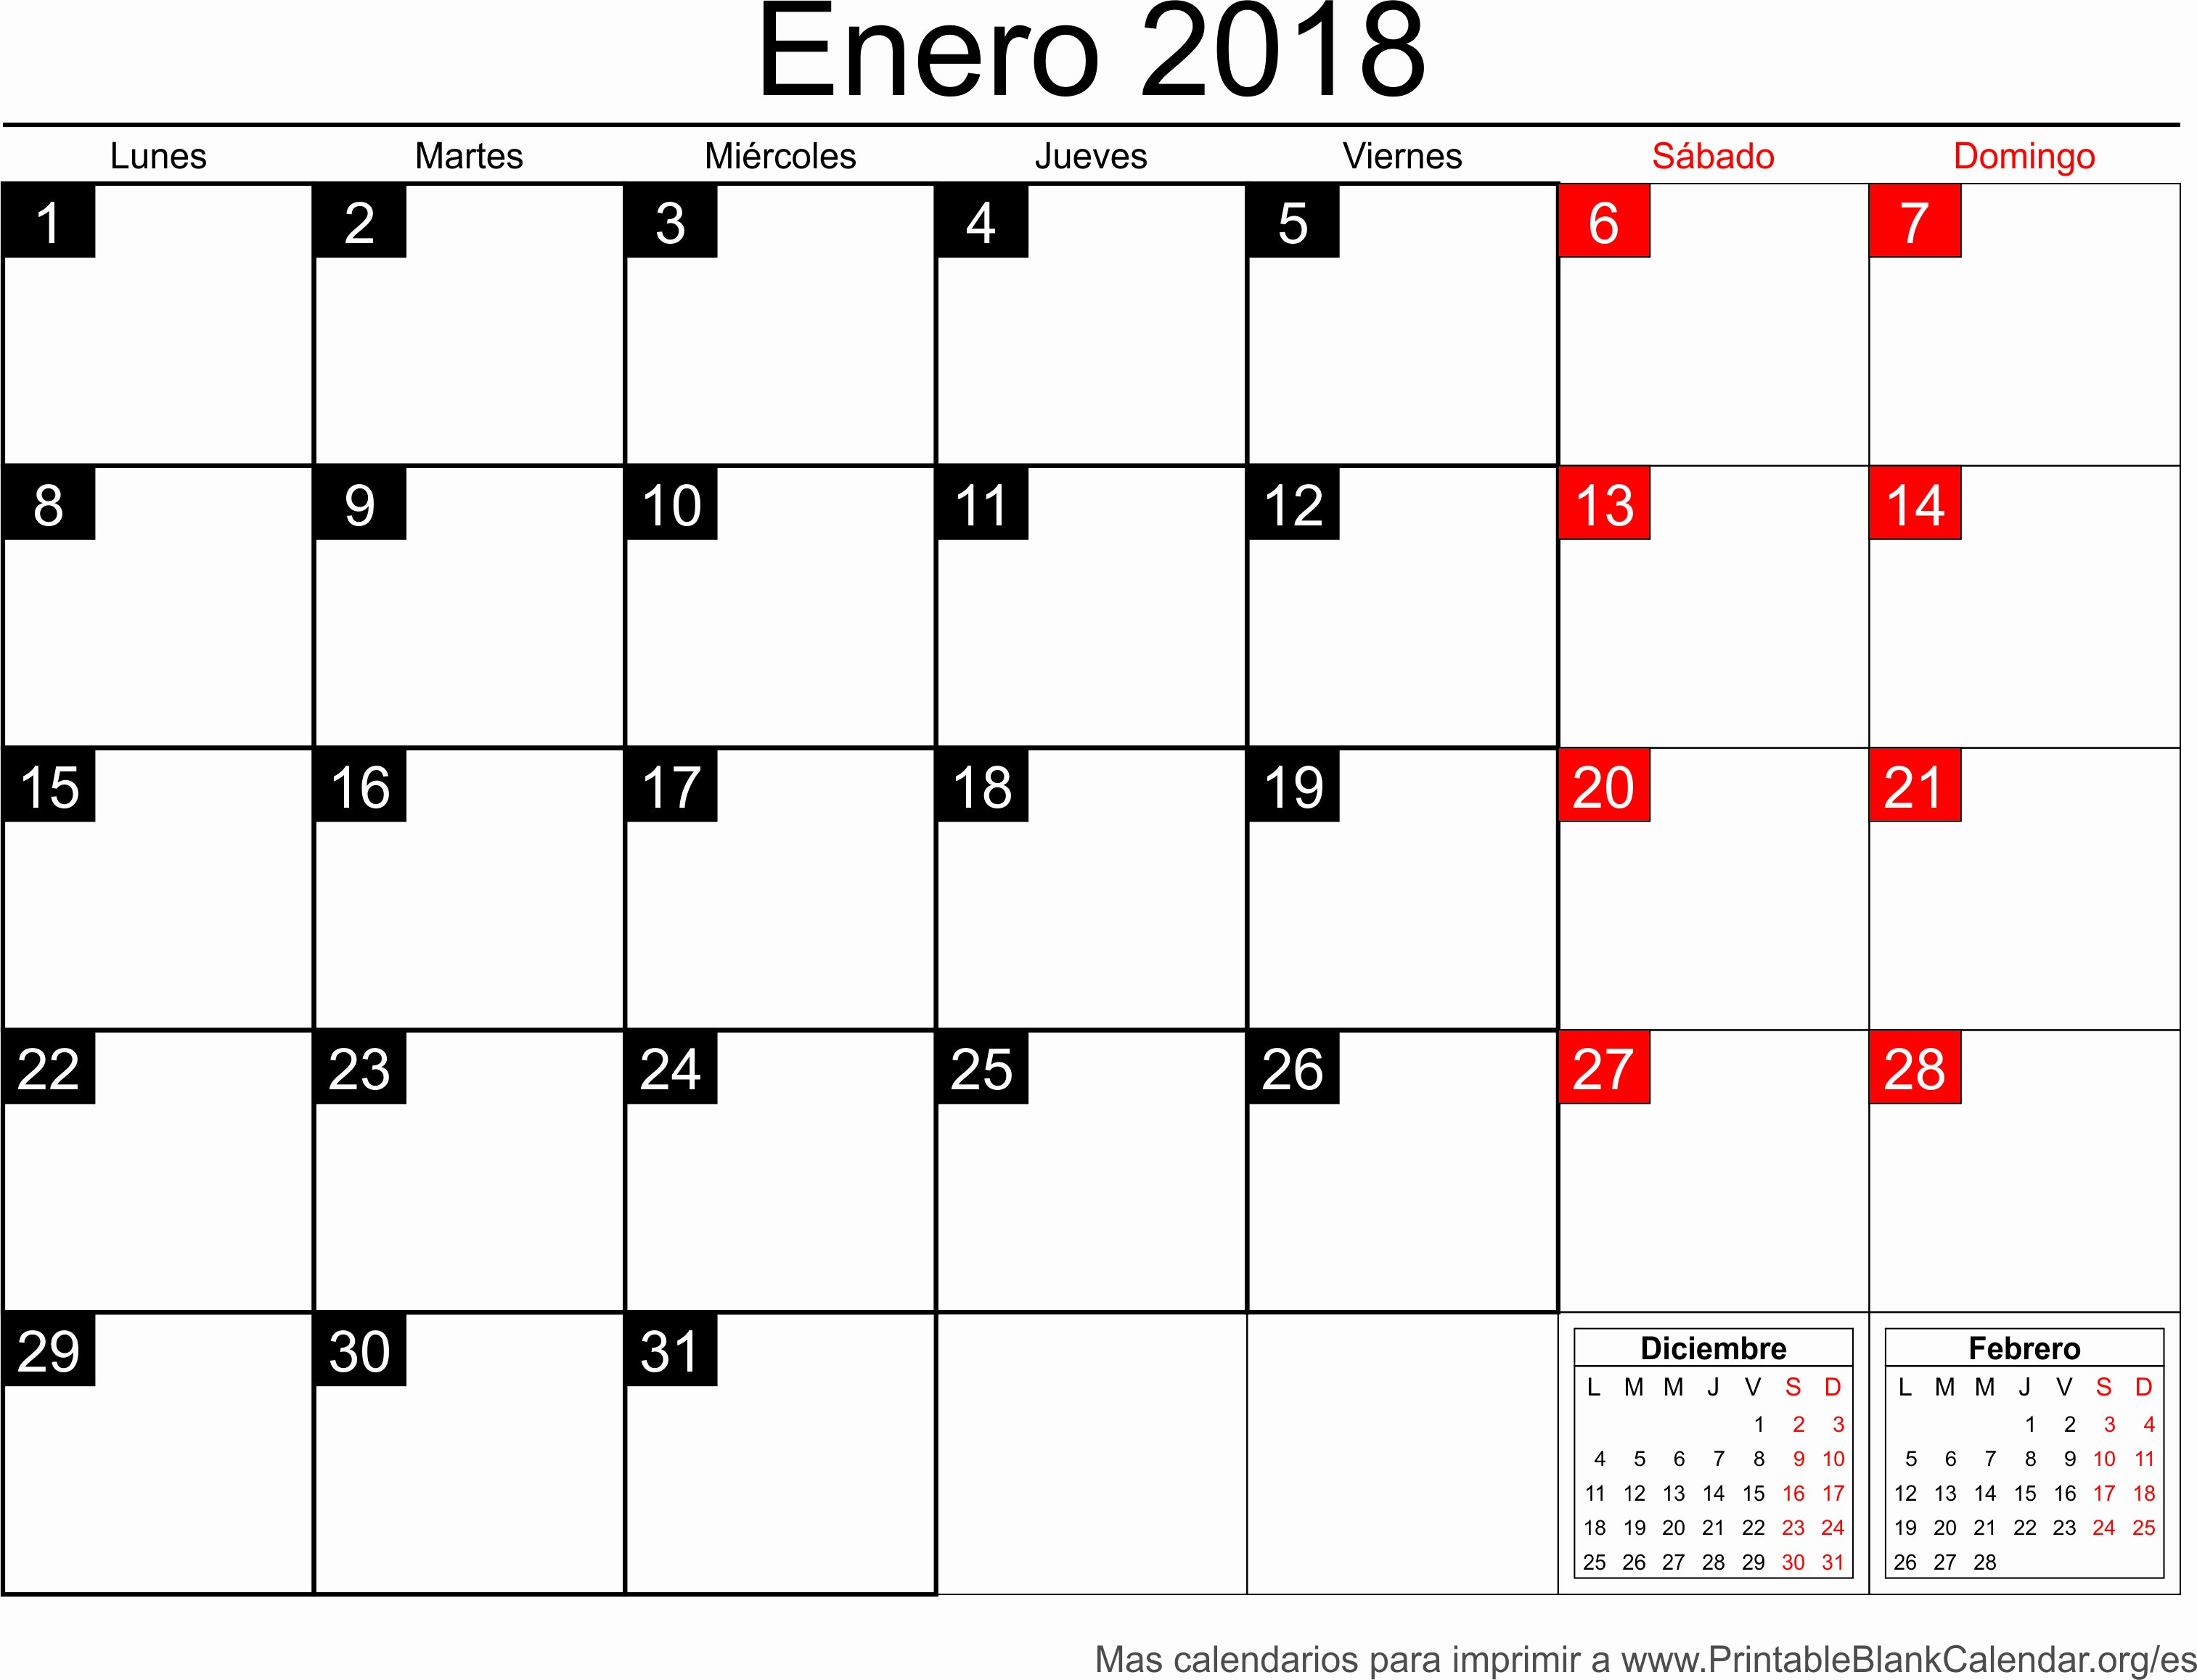 Calendario Febrero 2018 Para Imprimir Elegant Enero Calendario 2018 Related Keywords Enero Calendario